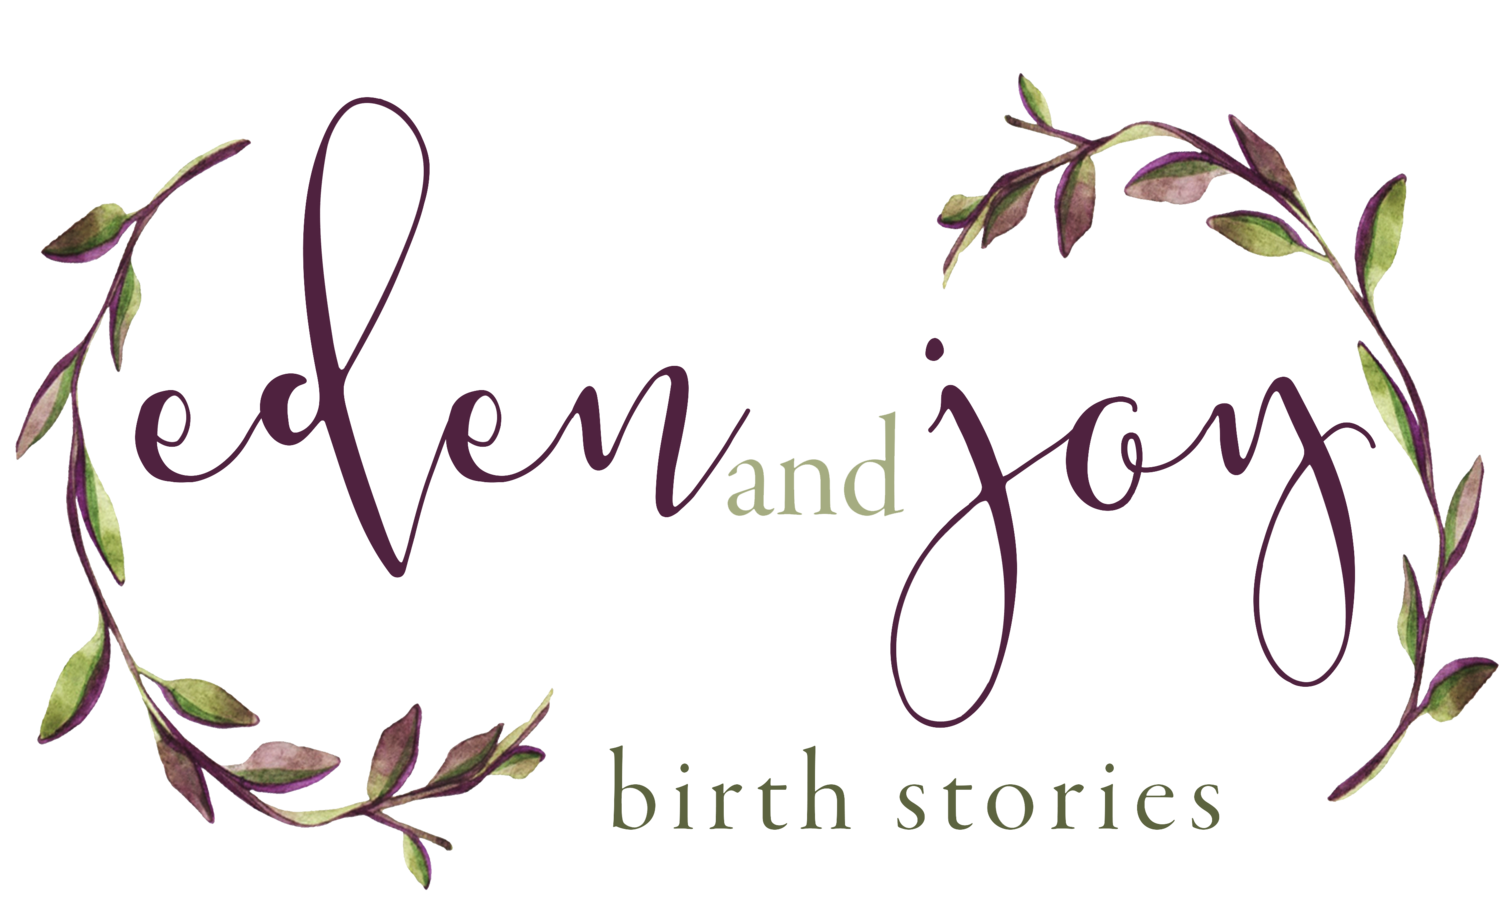 Eden & Joy Birth Stories